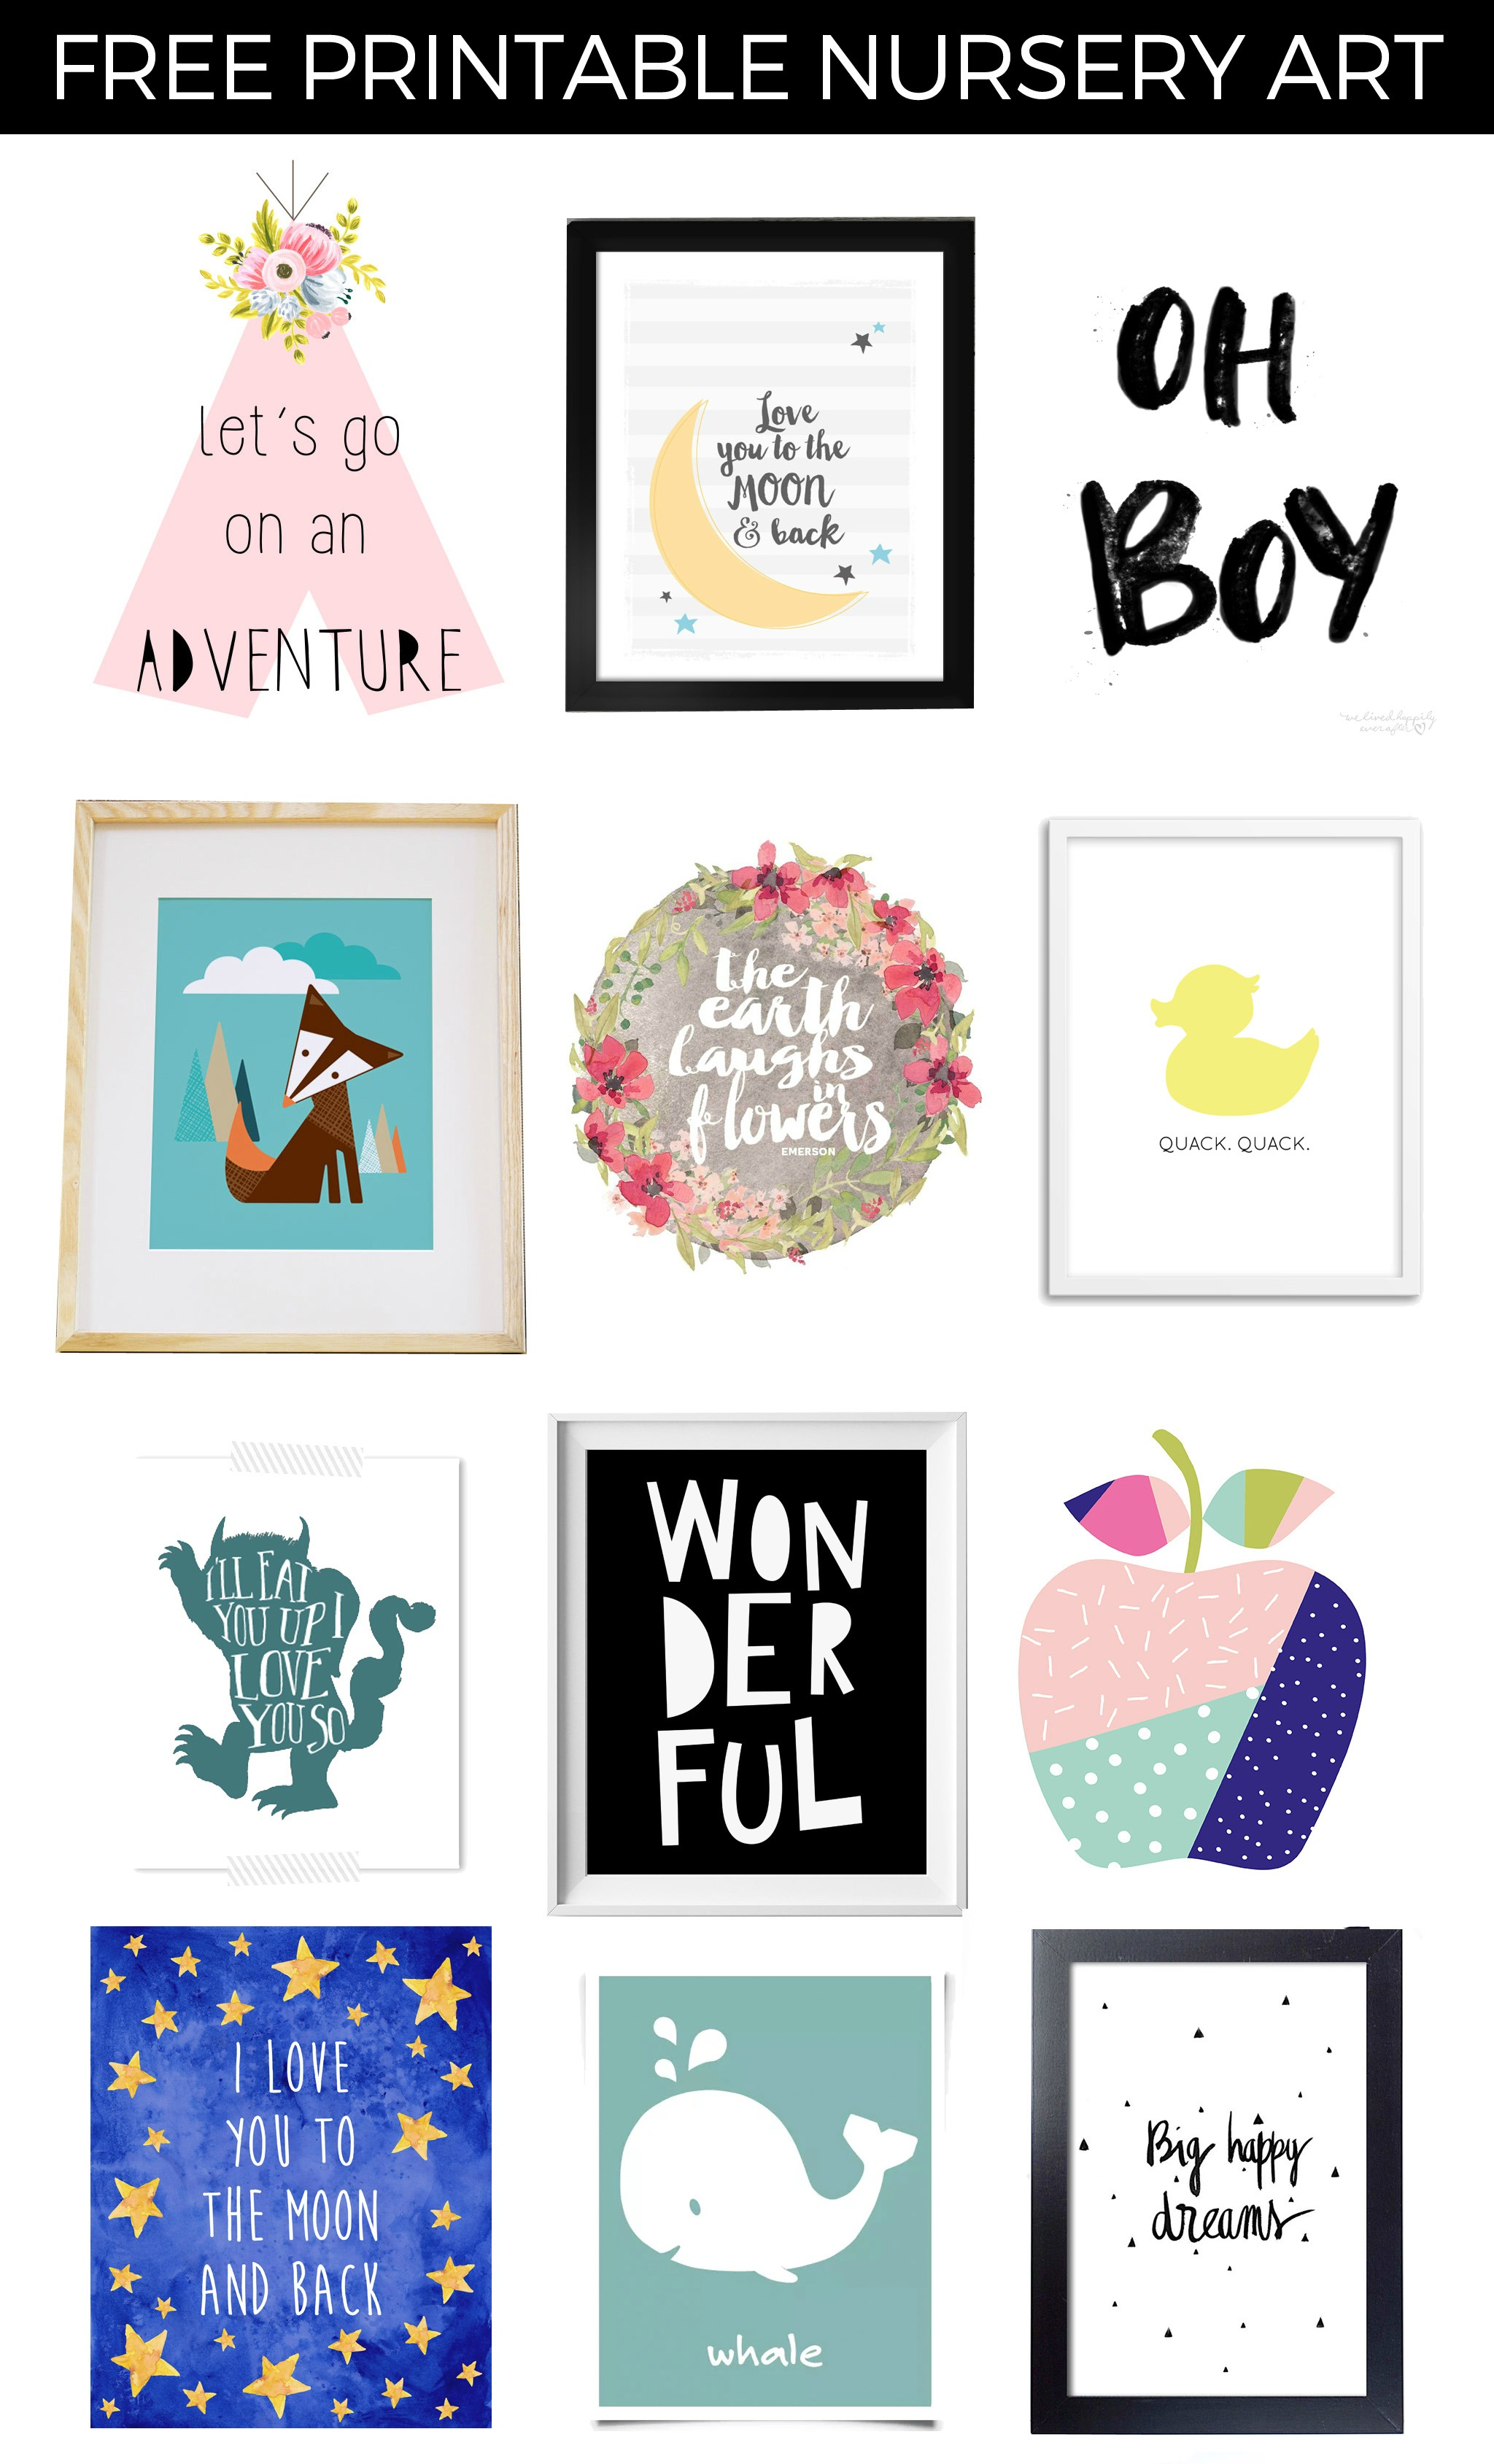 photograph regarding Free Printable Nursery Art identified as Absolutely free Printable Nursery Artwork - Venture Nursery